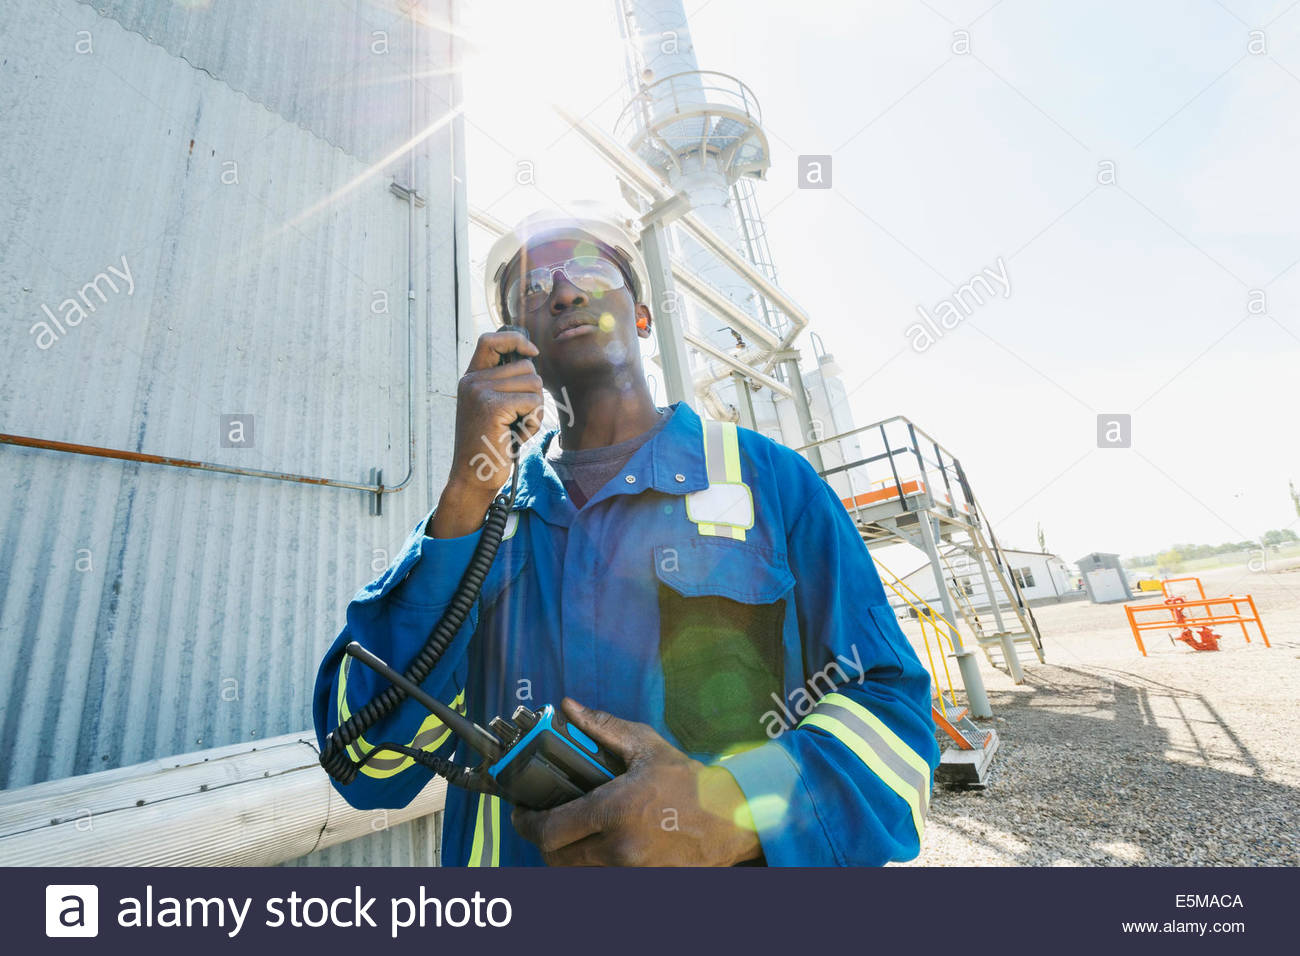 Male worker using walkie-talkie at gas plant - Stock Image